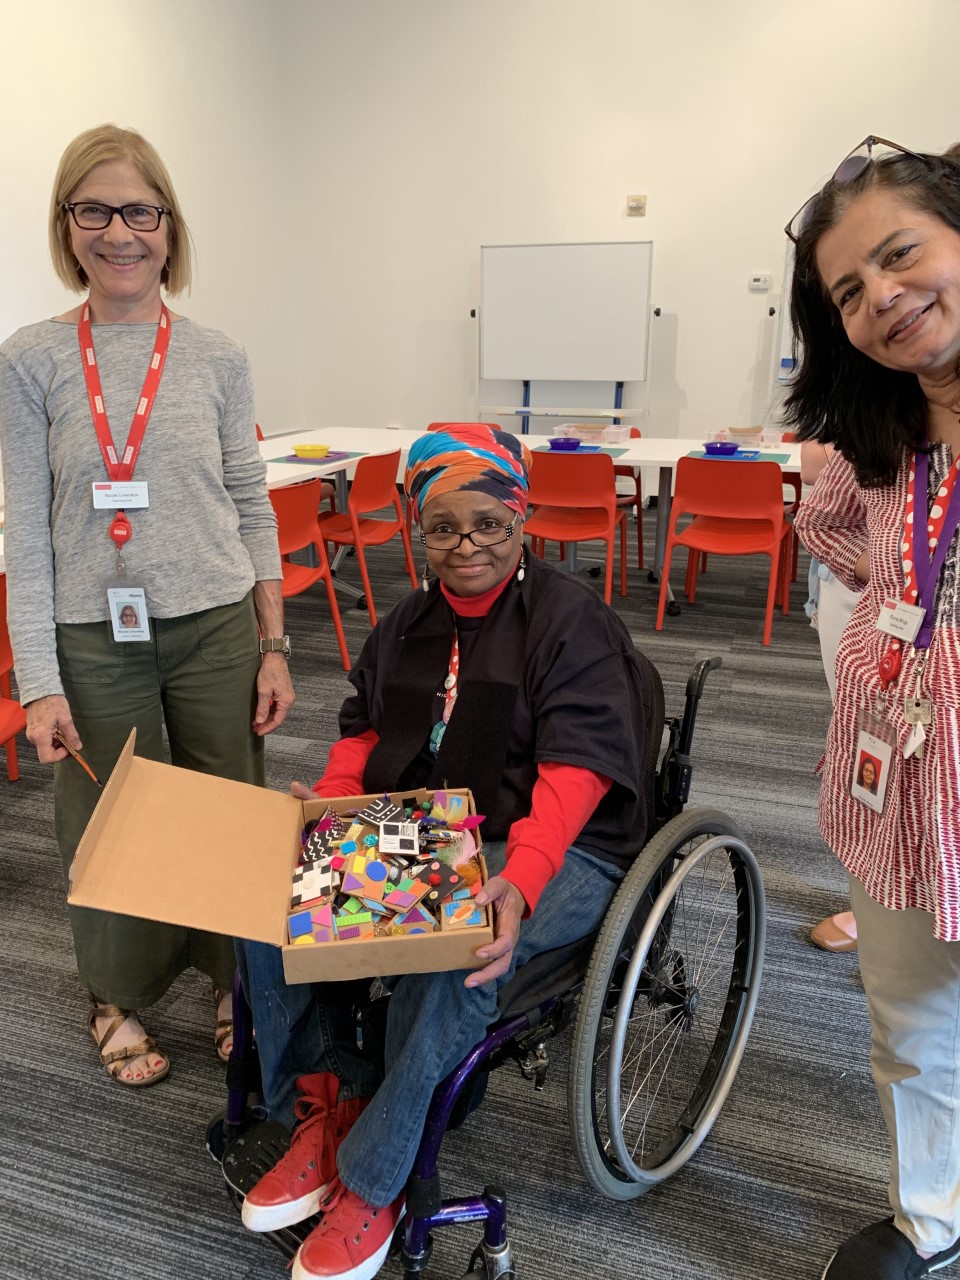 Two women stand on either side of a woman using a wheelchair holding a box of tactile materials.